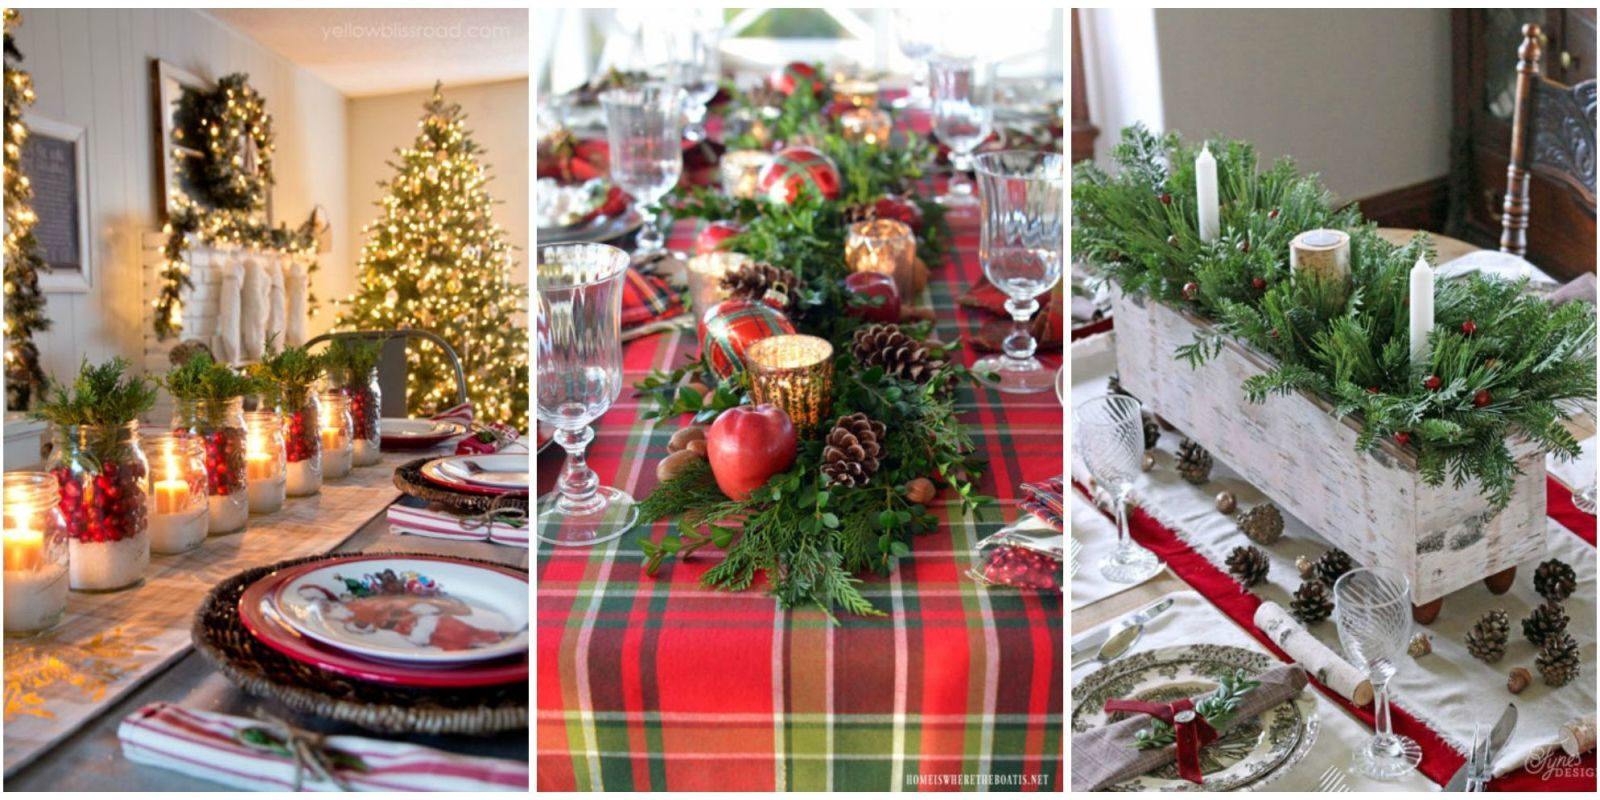 Hosting a get-together for family and friends this Christmas? Get inspired to make your holiday table sparkle with these ideas for special decorations and ... & 49 Best Christmas Table Settings - Decorations and Centerpiece Ideas ...